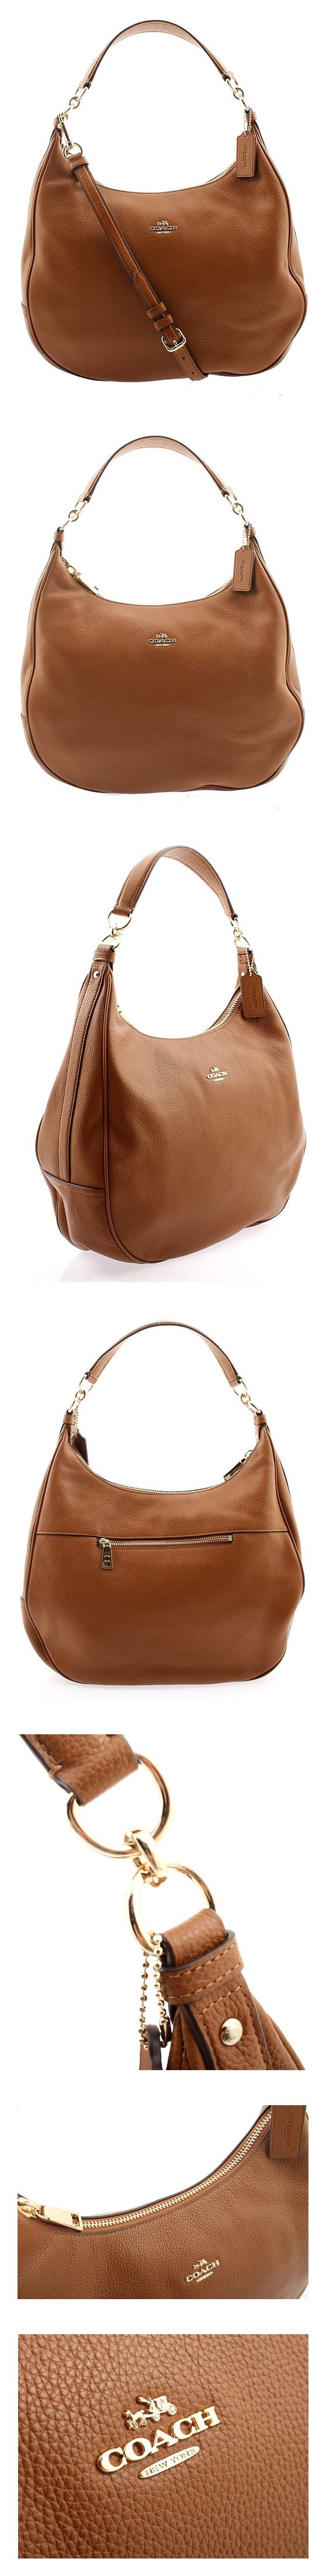 94ff611f2c  183.99 - Coach Harley Hobo in Pebble Leather